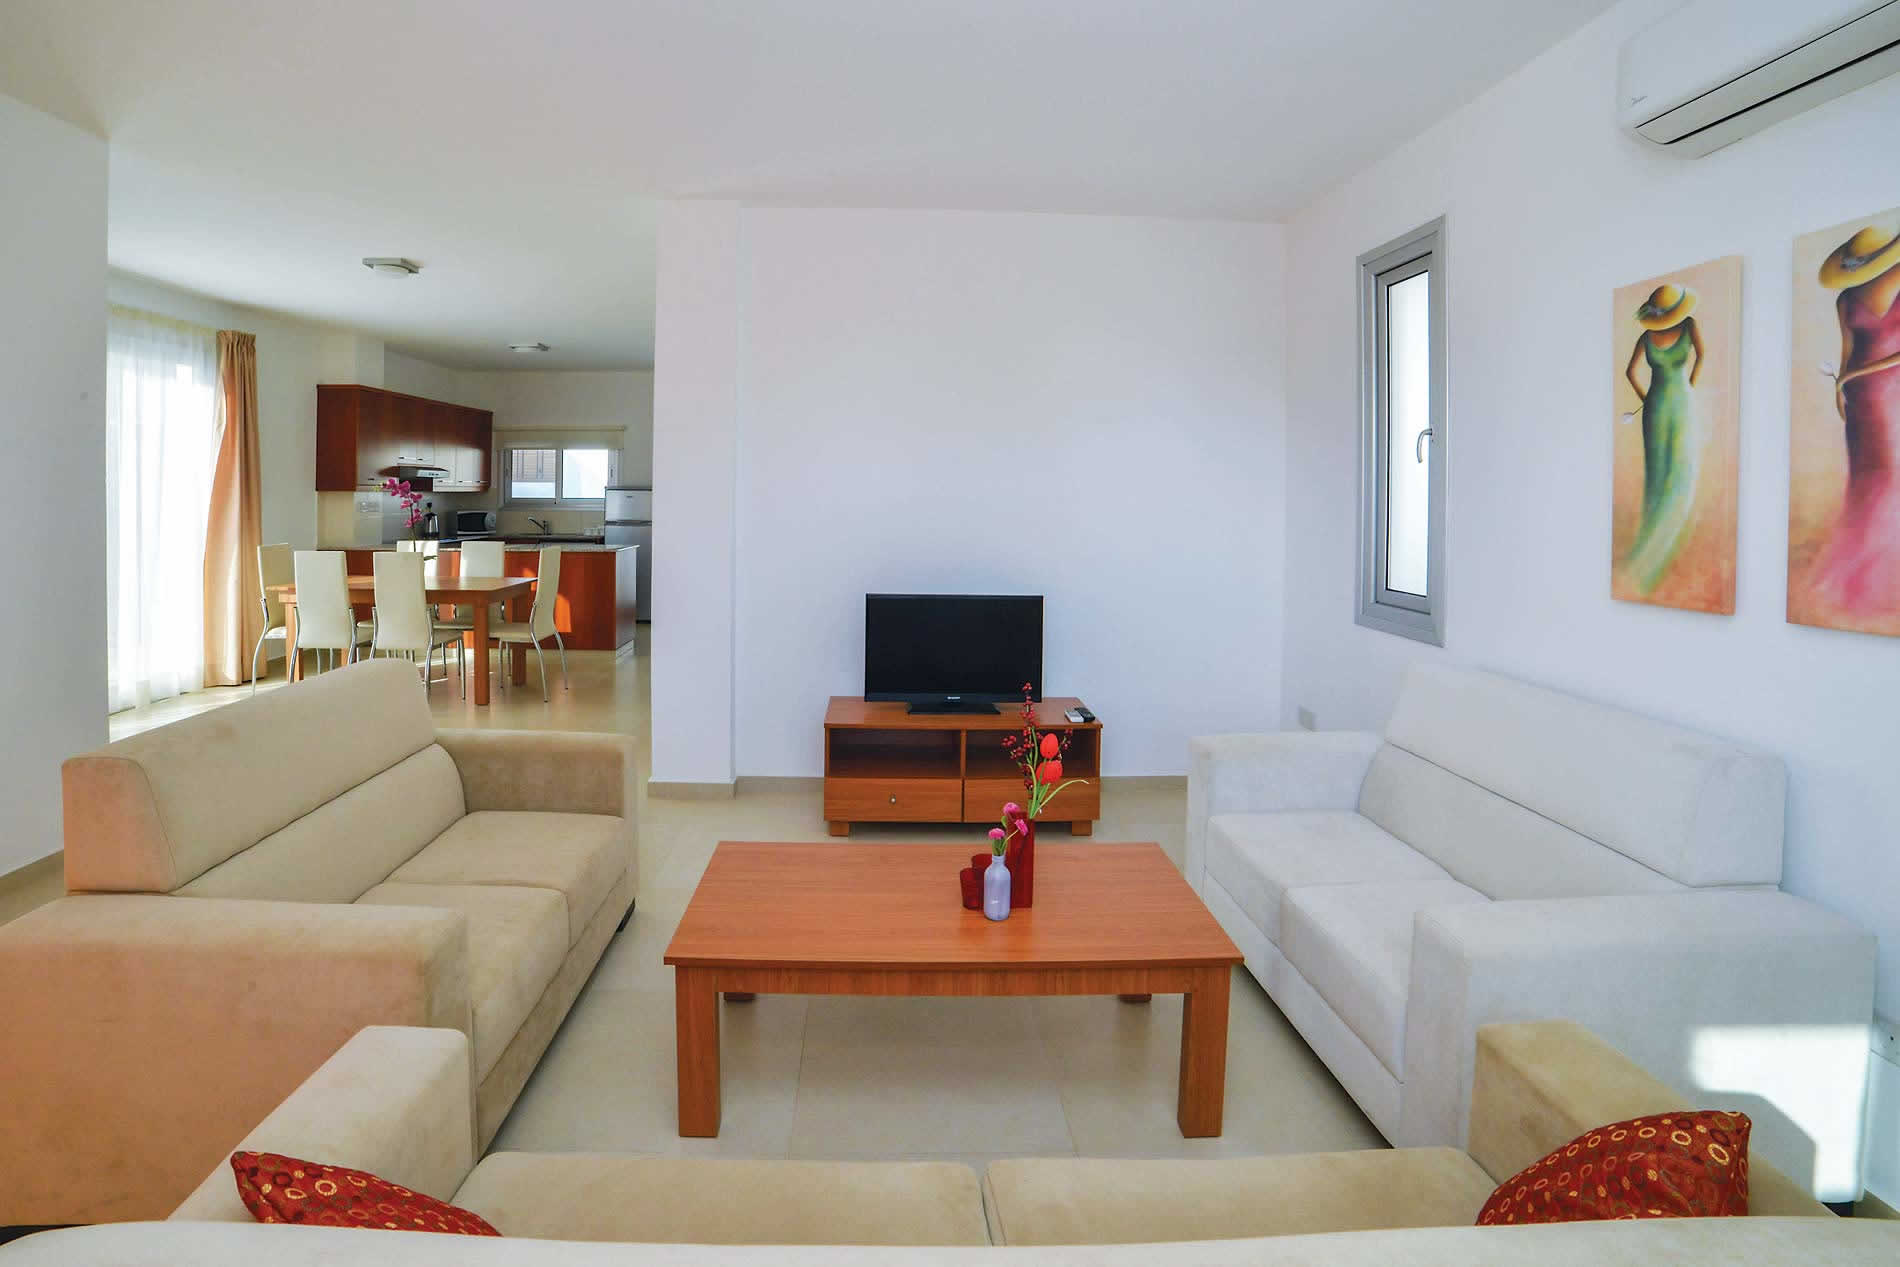 Coral Bay Villa 8 in Coral Bay - sleeps 6 people